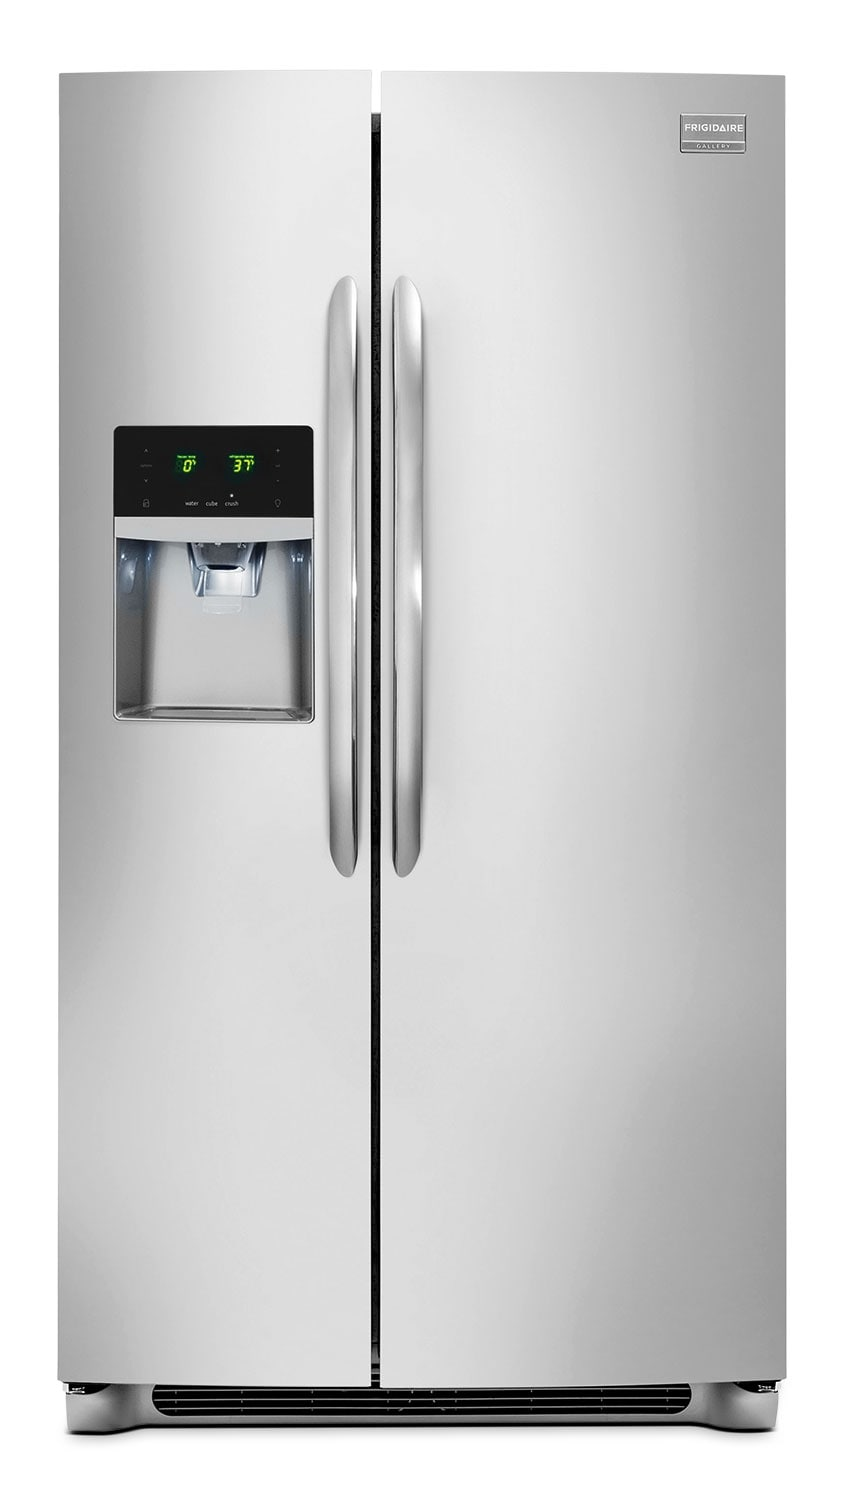 Refrigerators and Freezers - Frigidaire Gallery 23 Cu. Ft. Side-By-Side Refrigerator - Stainless Steel